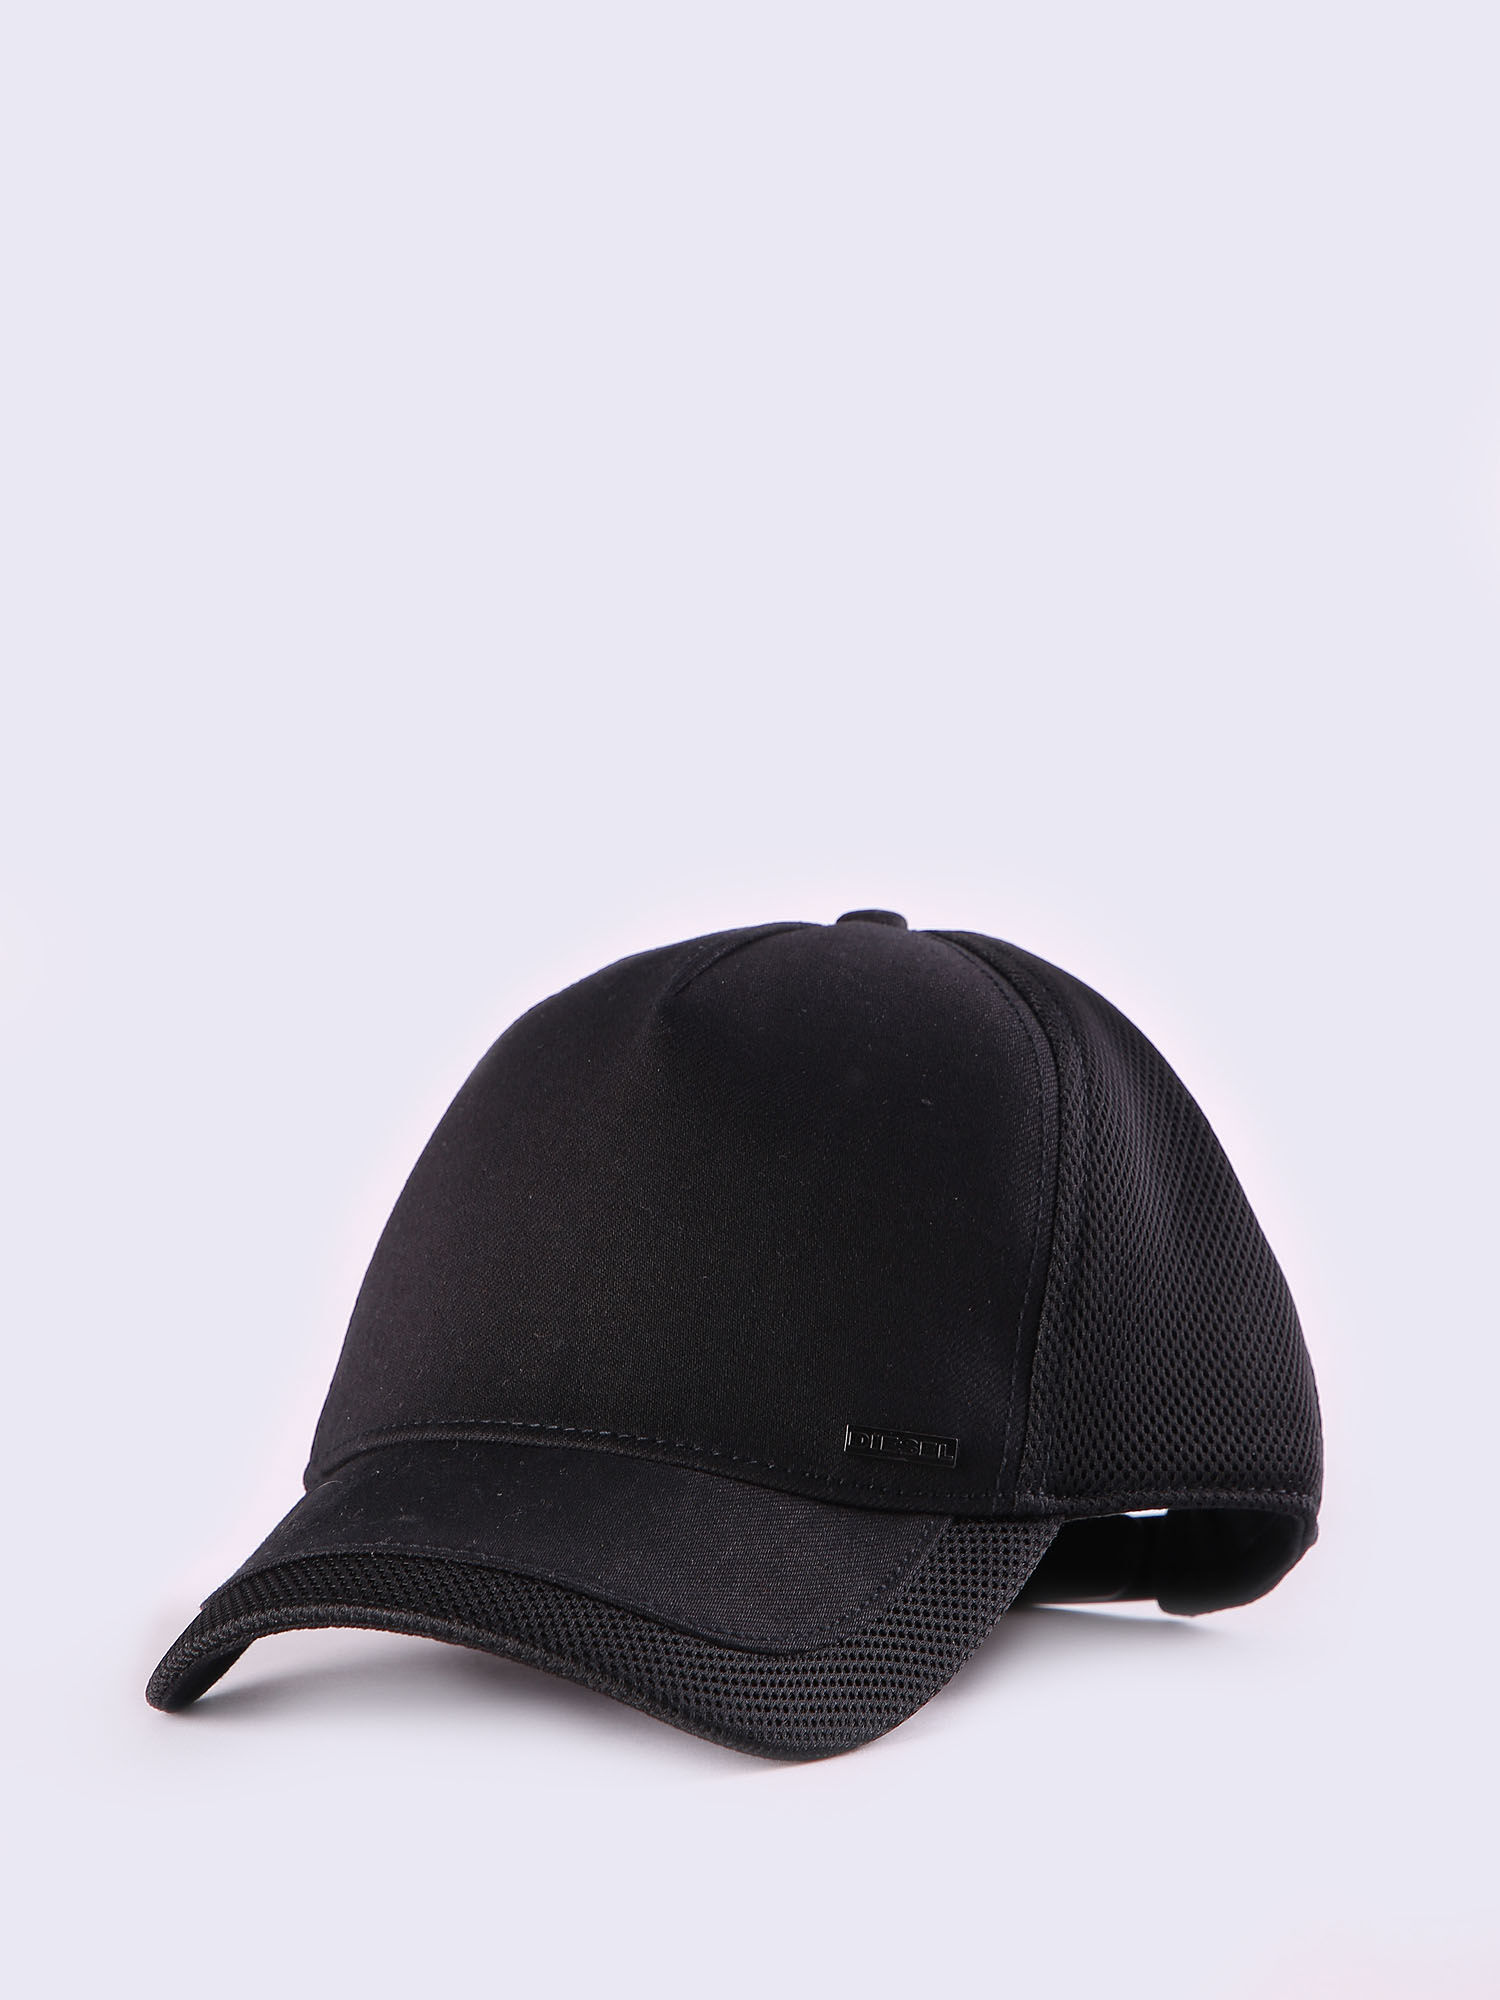 299a742b34b sale mens womens stussy the jumbo s iconic logo leather strap back cap  black 3923a fb125  get chinus d caps hats gloves a2fd0 24894